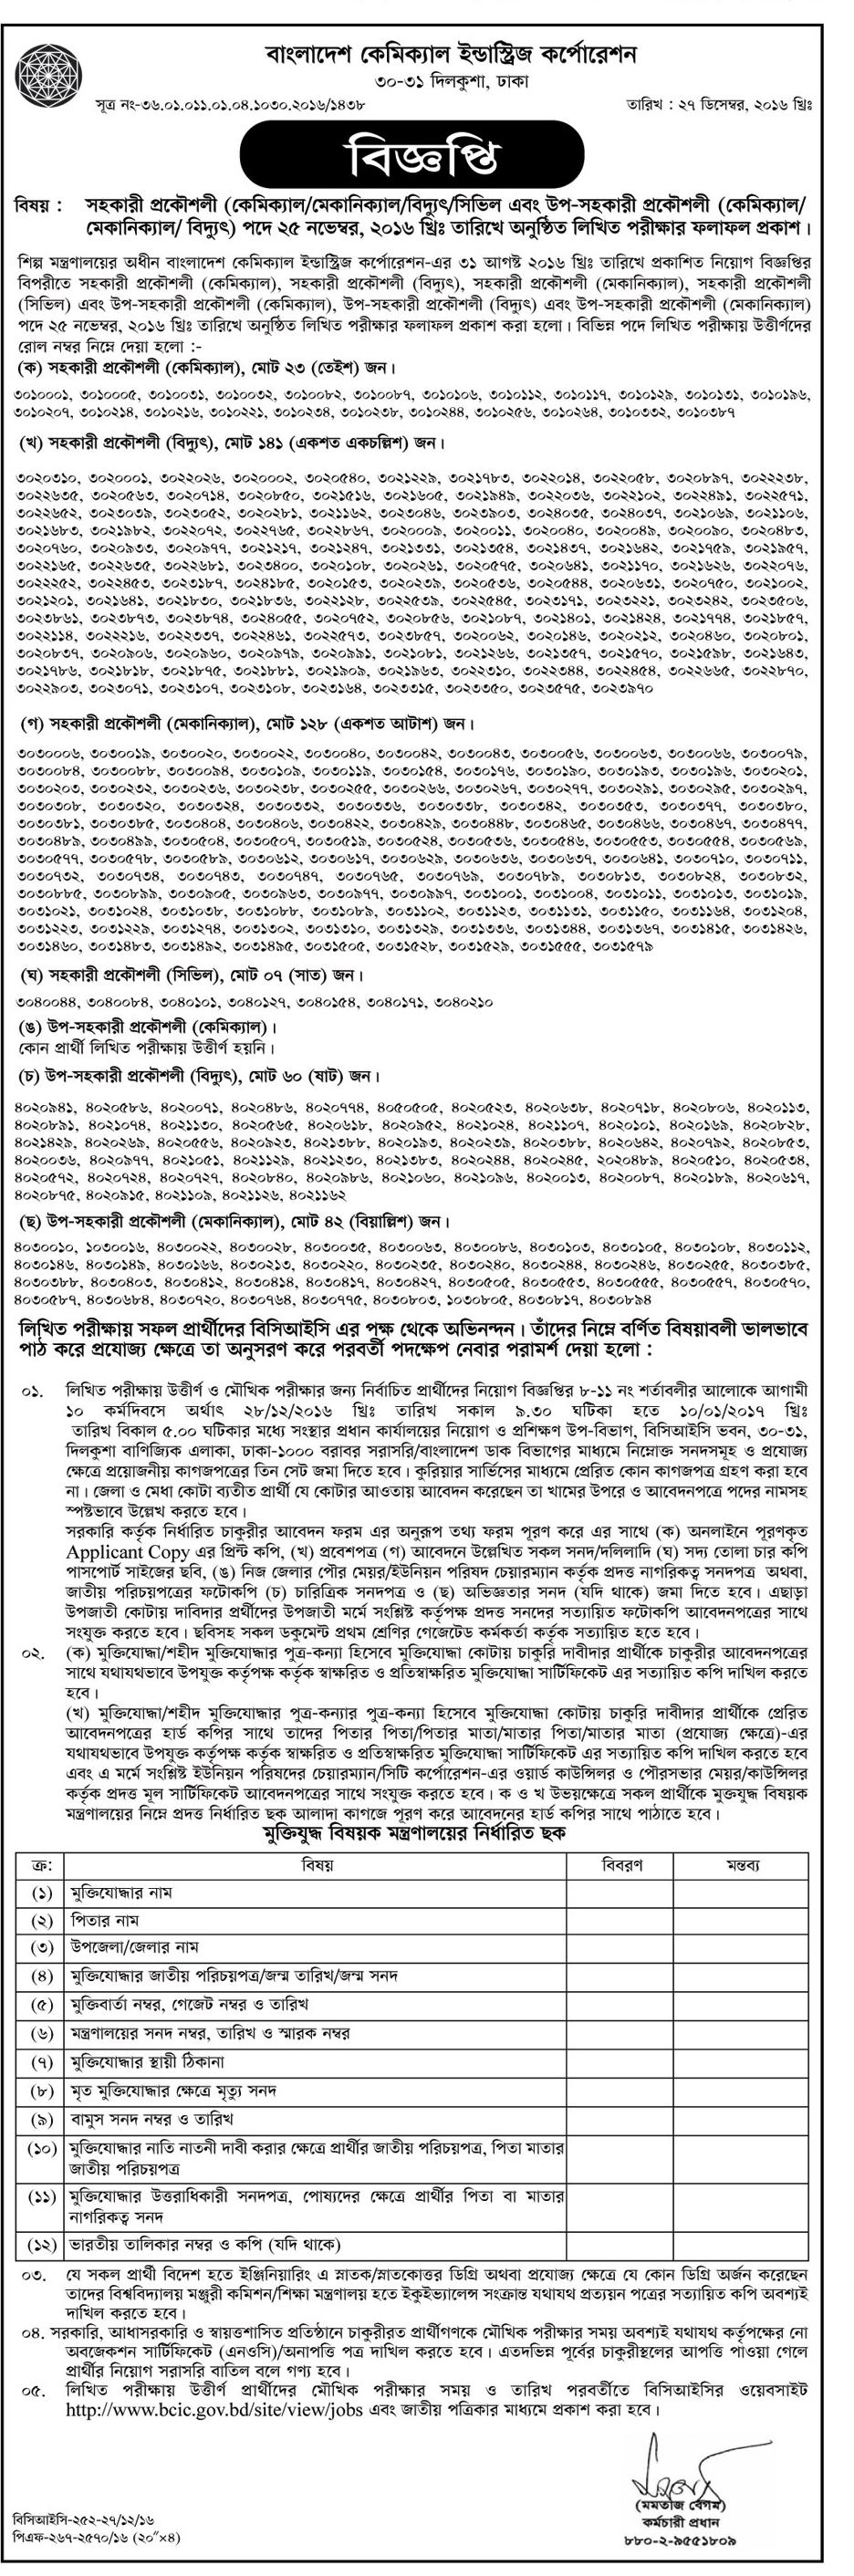 bangladesh chemical industries corporation Exam Result